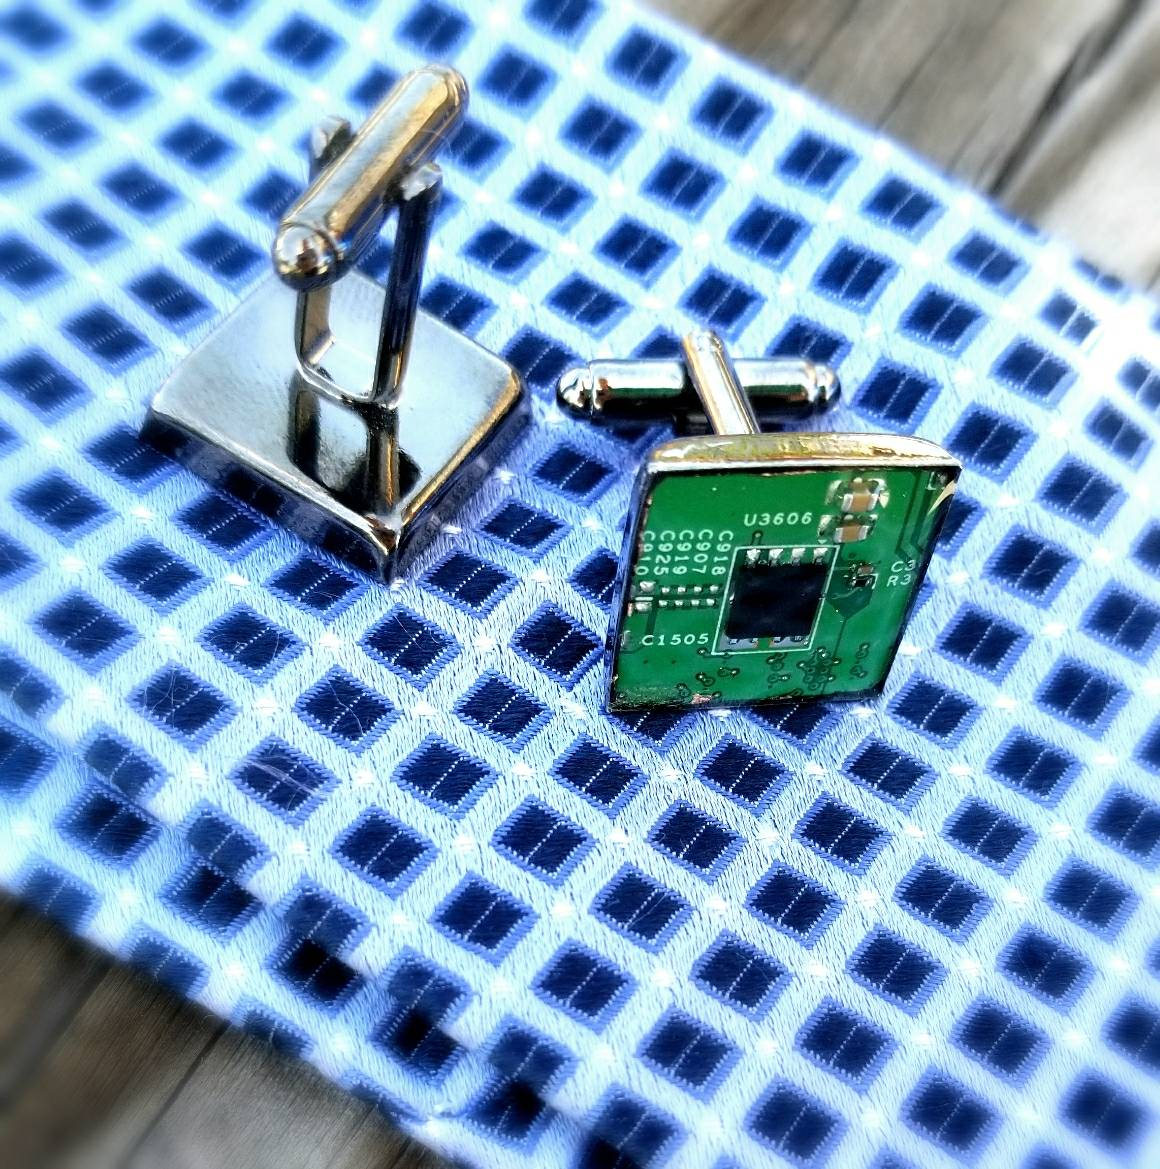 Motherboard cufflinks, Cuff links from an actual motherboard or circuit board in gunmetal, Father's day gift him, geek gift, blue and green